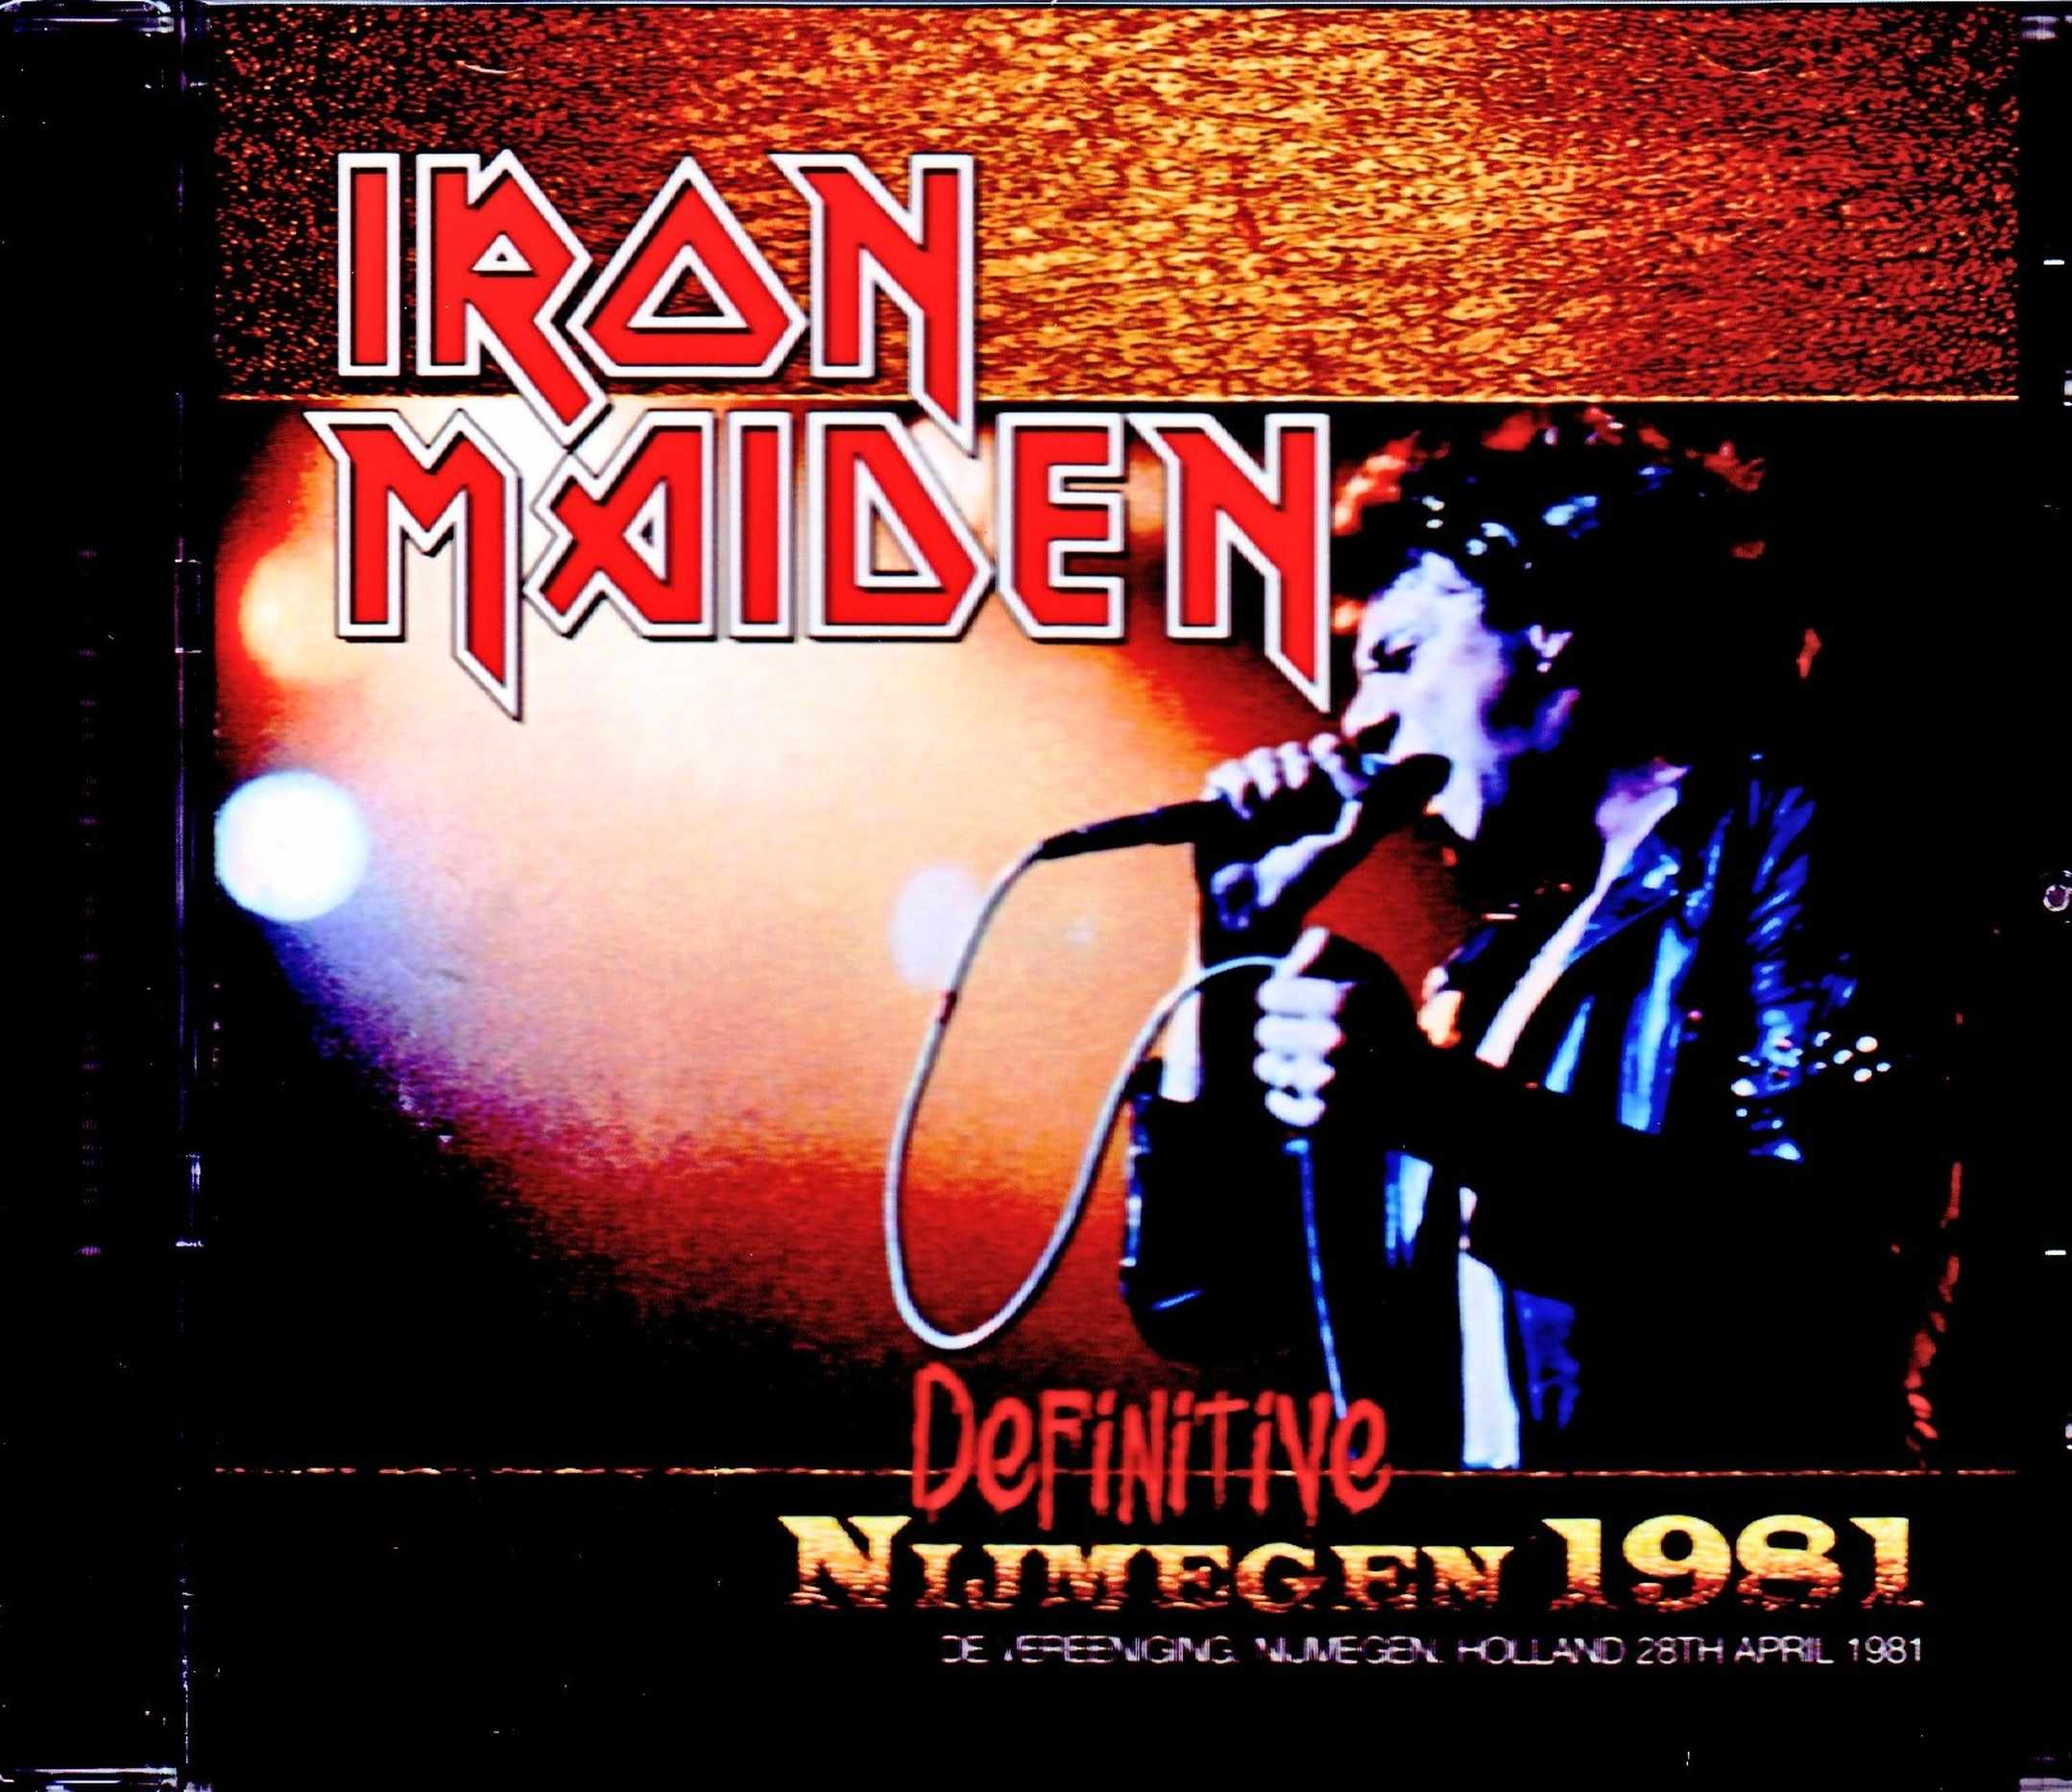 Iron Maiden アイアン・メイデン/Holland 1981 Upgrade